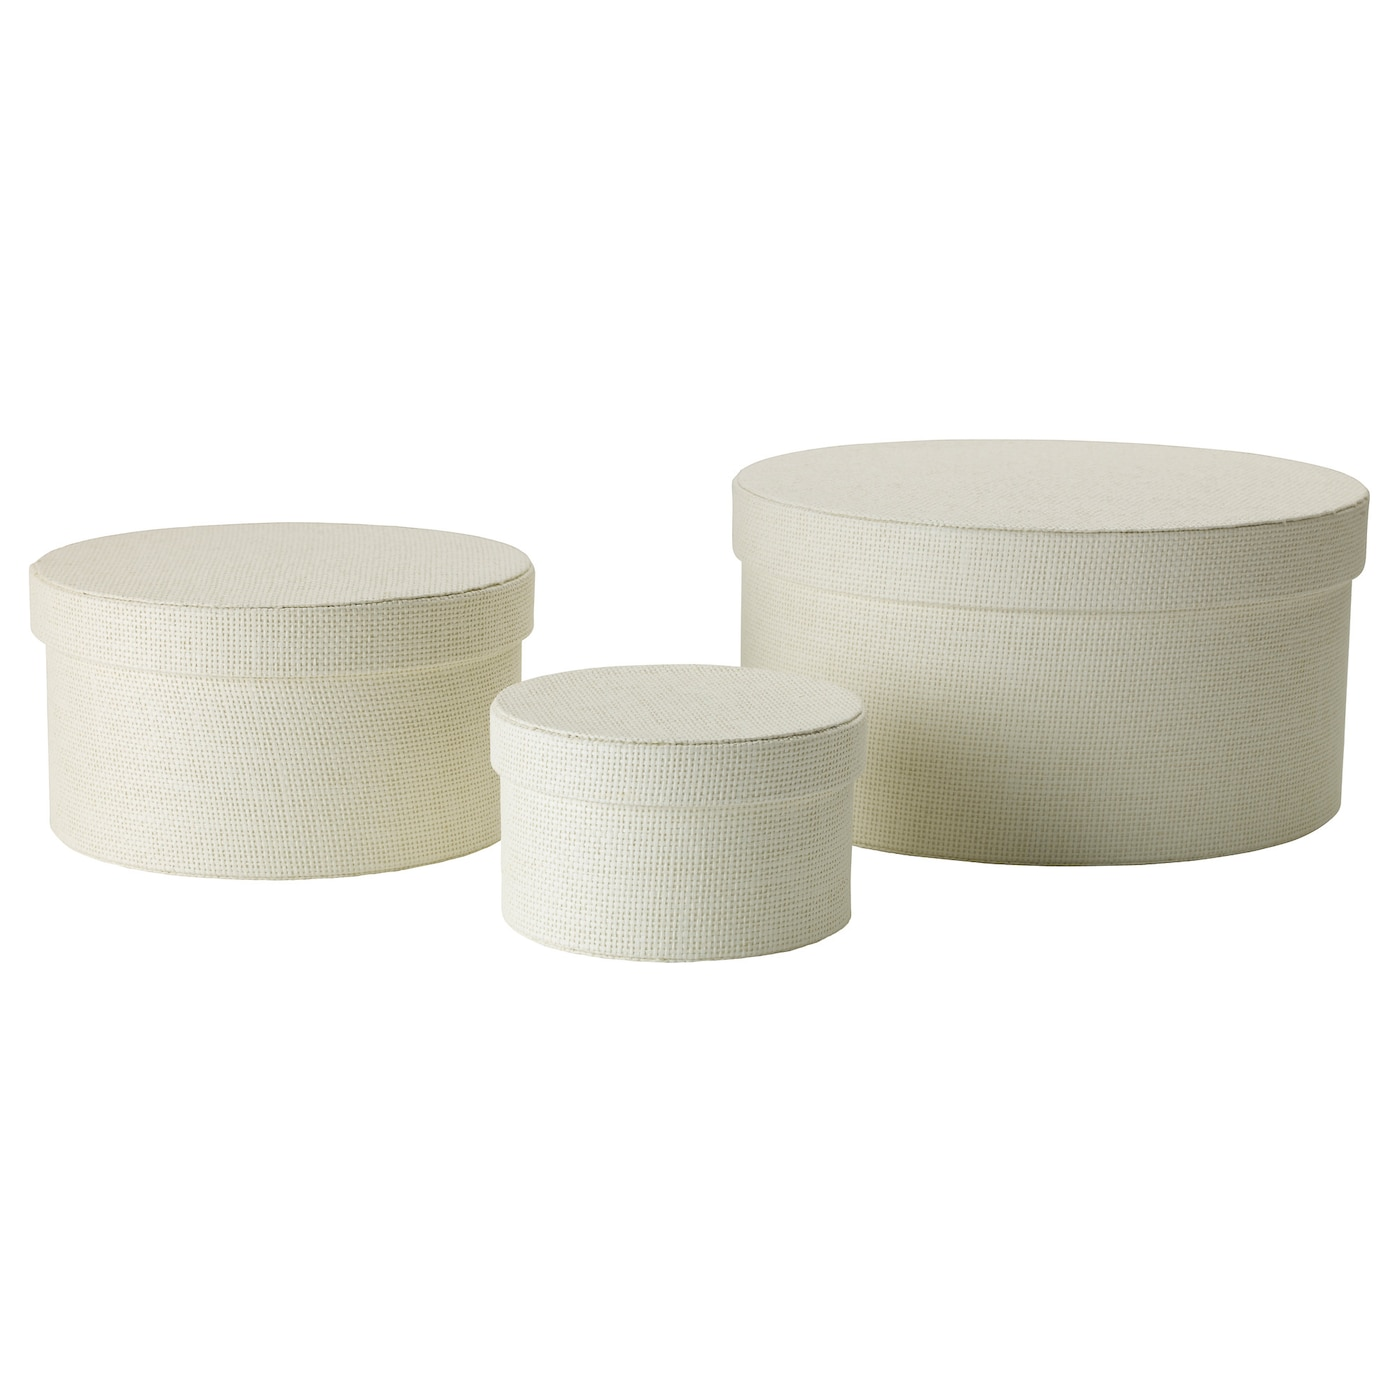 IKEA KVARNVIK box, set of 3